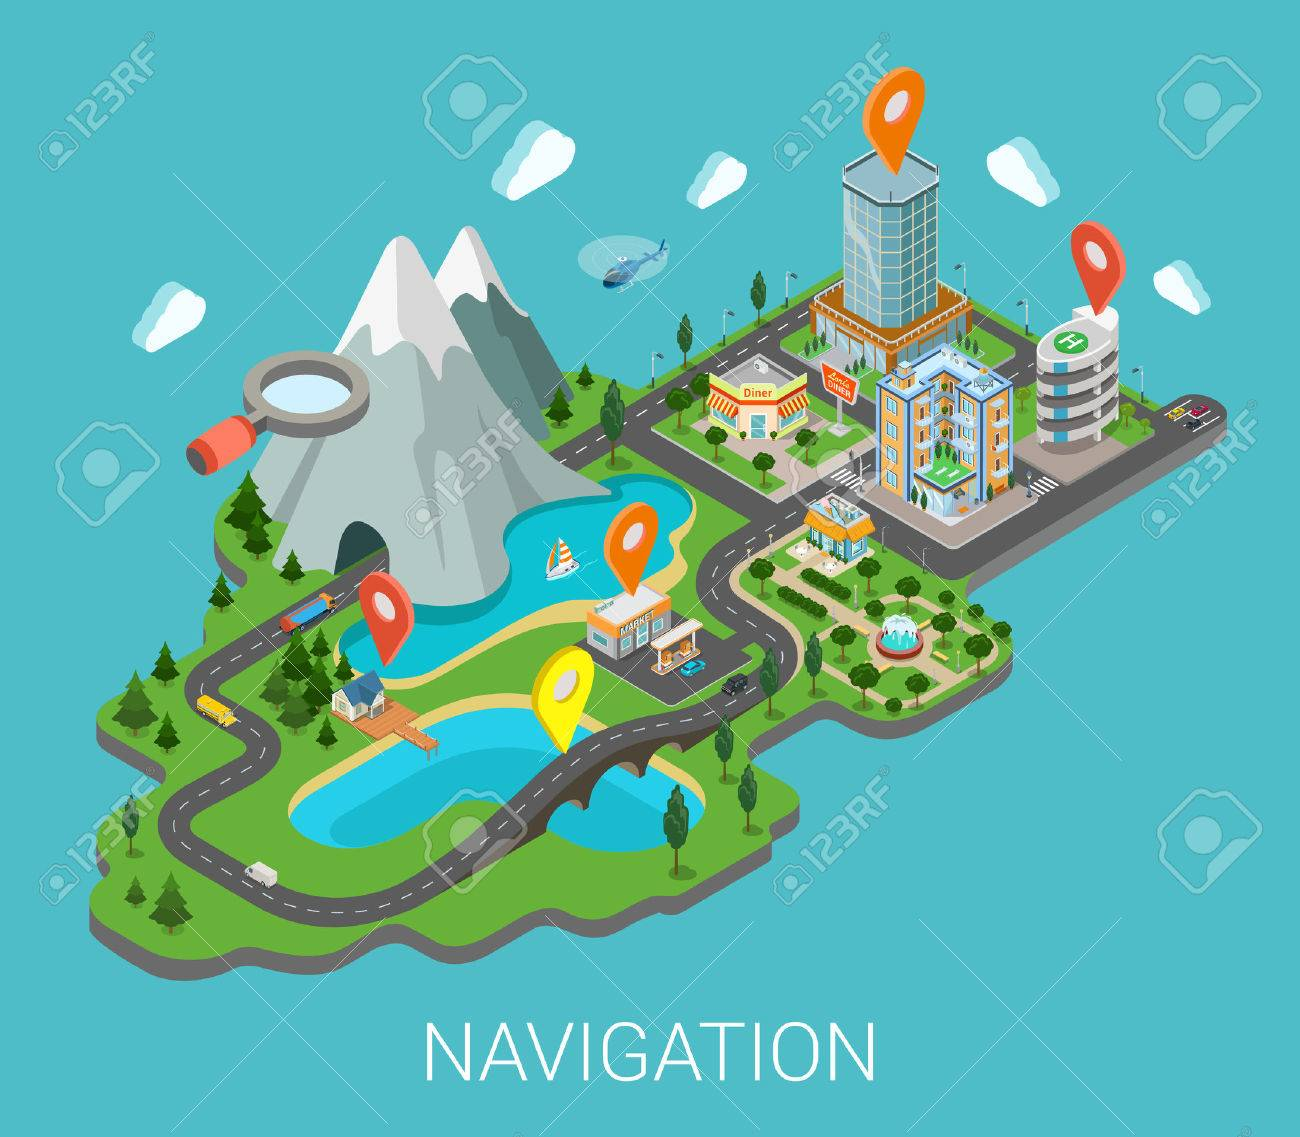 Flat 3d isometric map mobile GPS navigation app infographic concept. City countryside lake mountain gas station park restaurant bridge hotel shopping mall route pin markers. Navigate info graphics. - 54642384